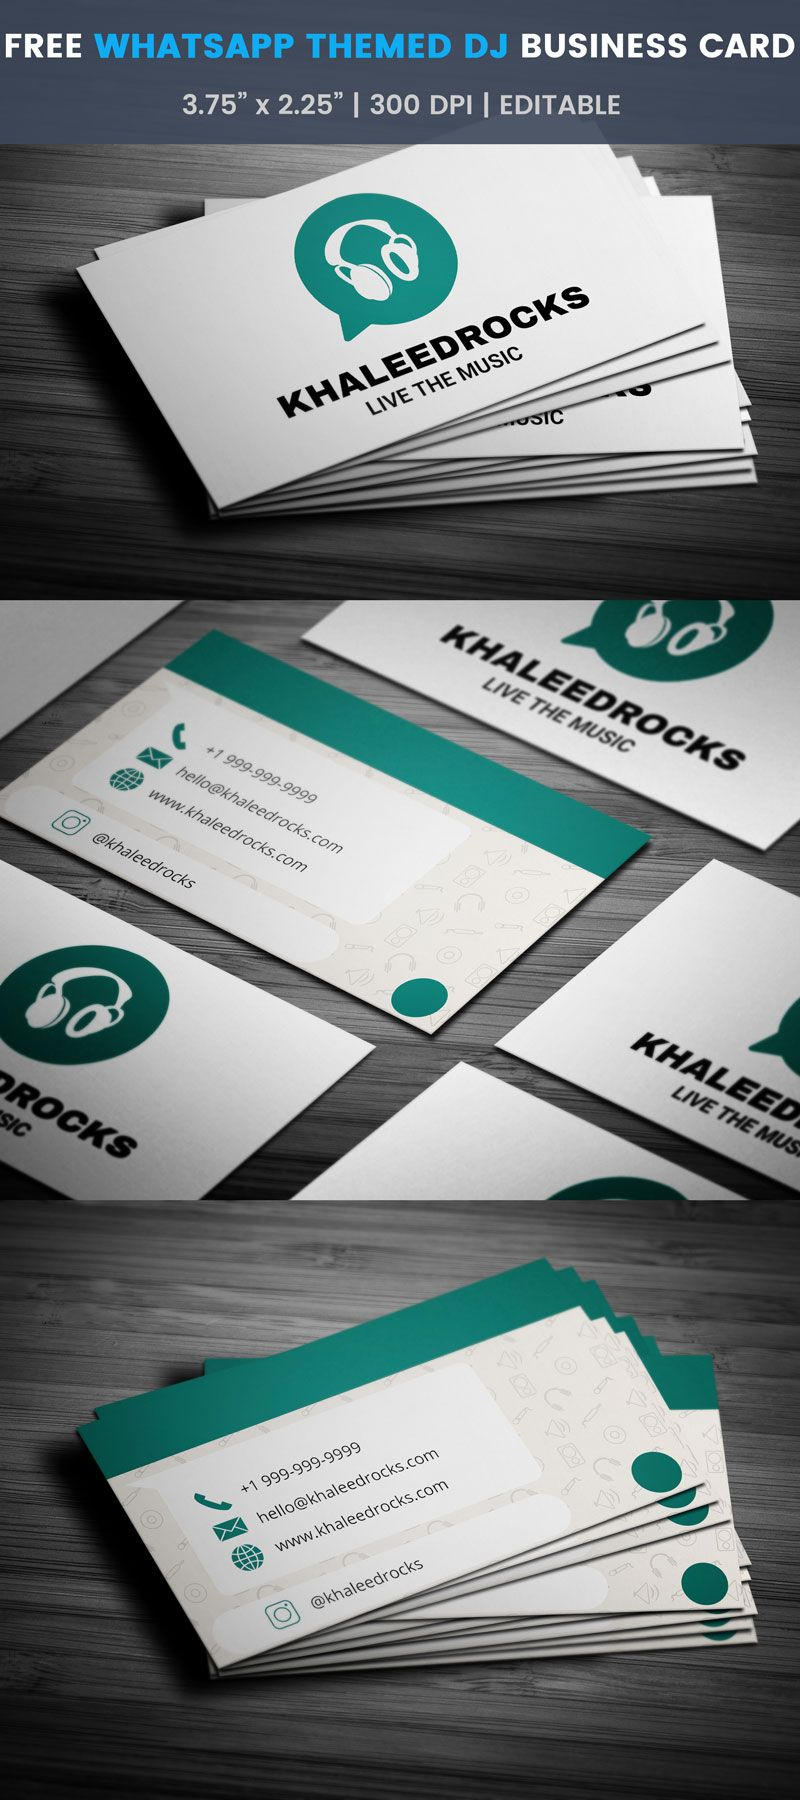 Whatsapp themed dj business card full preview free dj business whatsapp themed dj business card full preview reheart Gallery